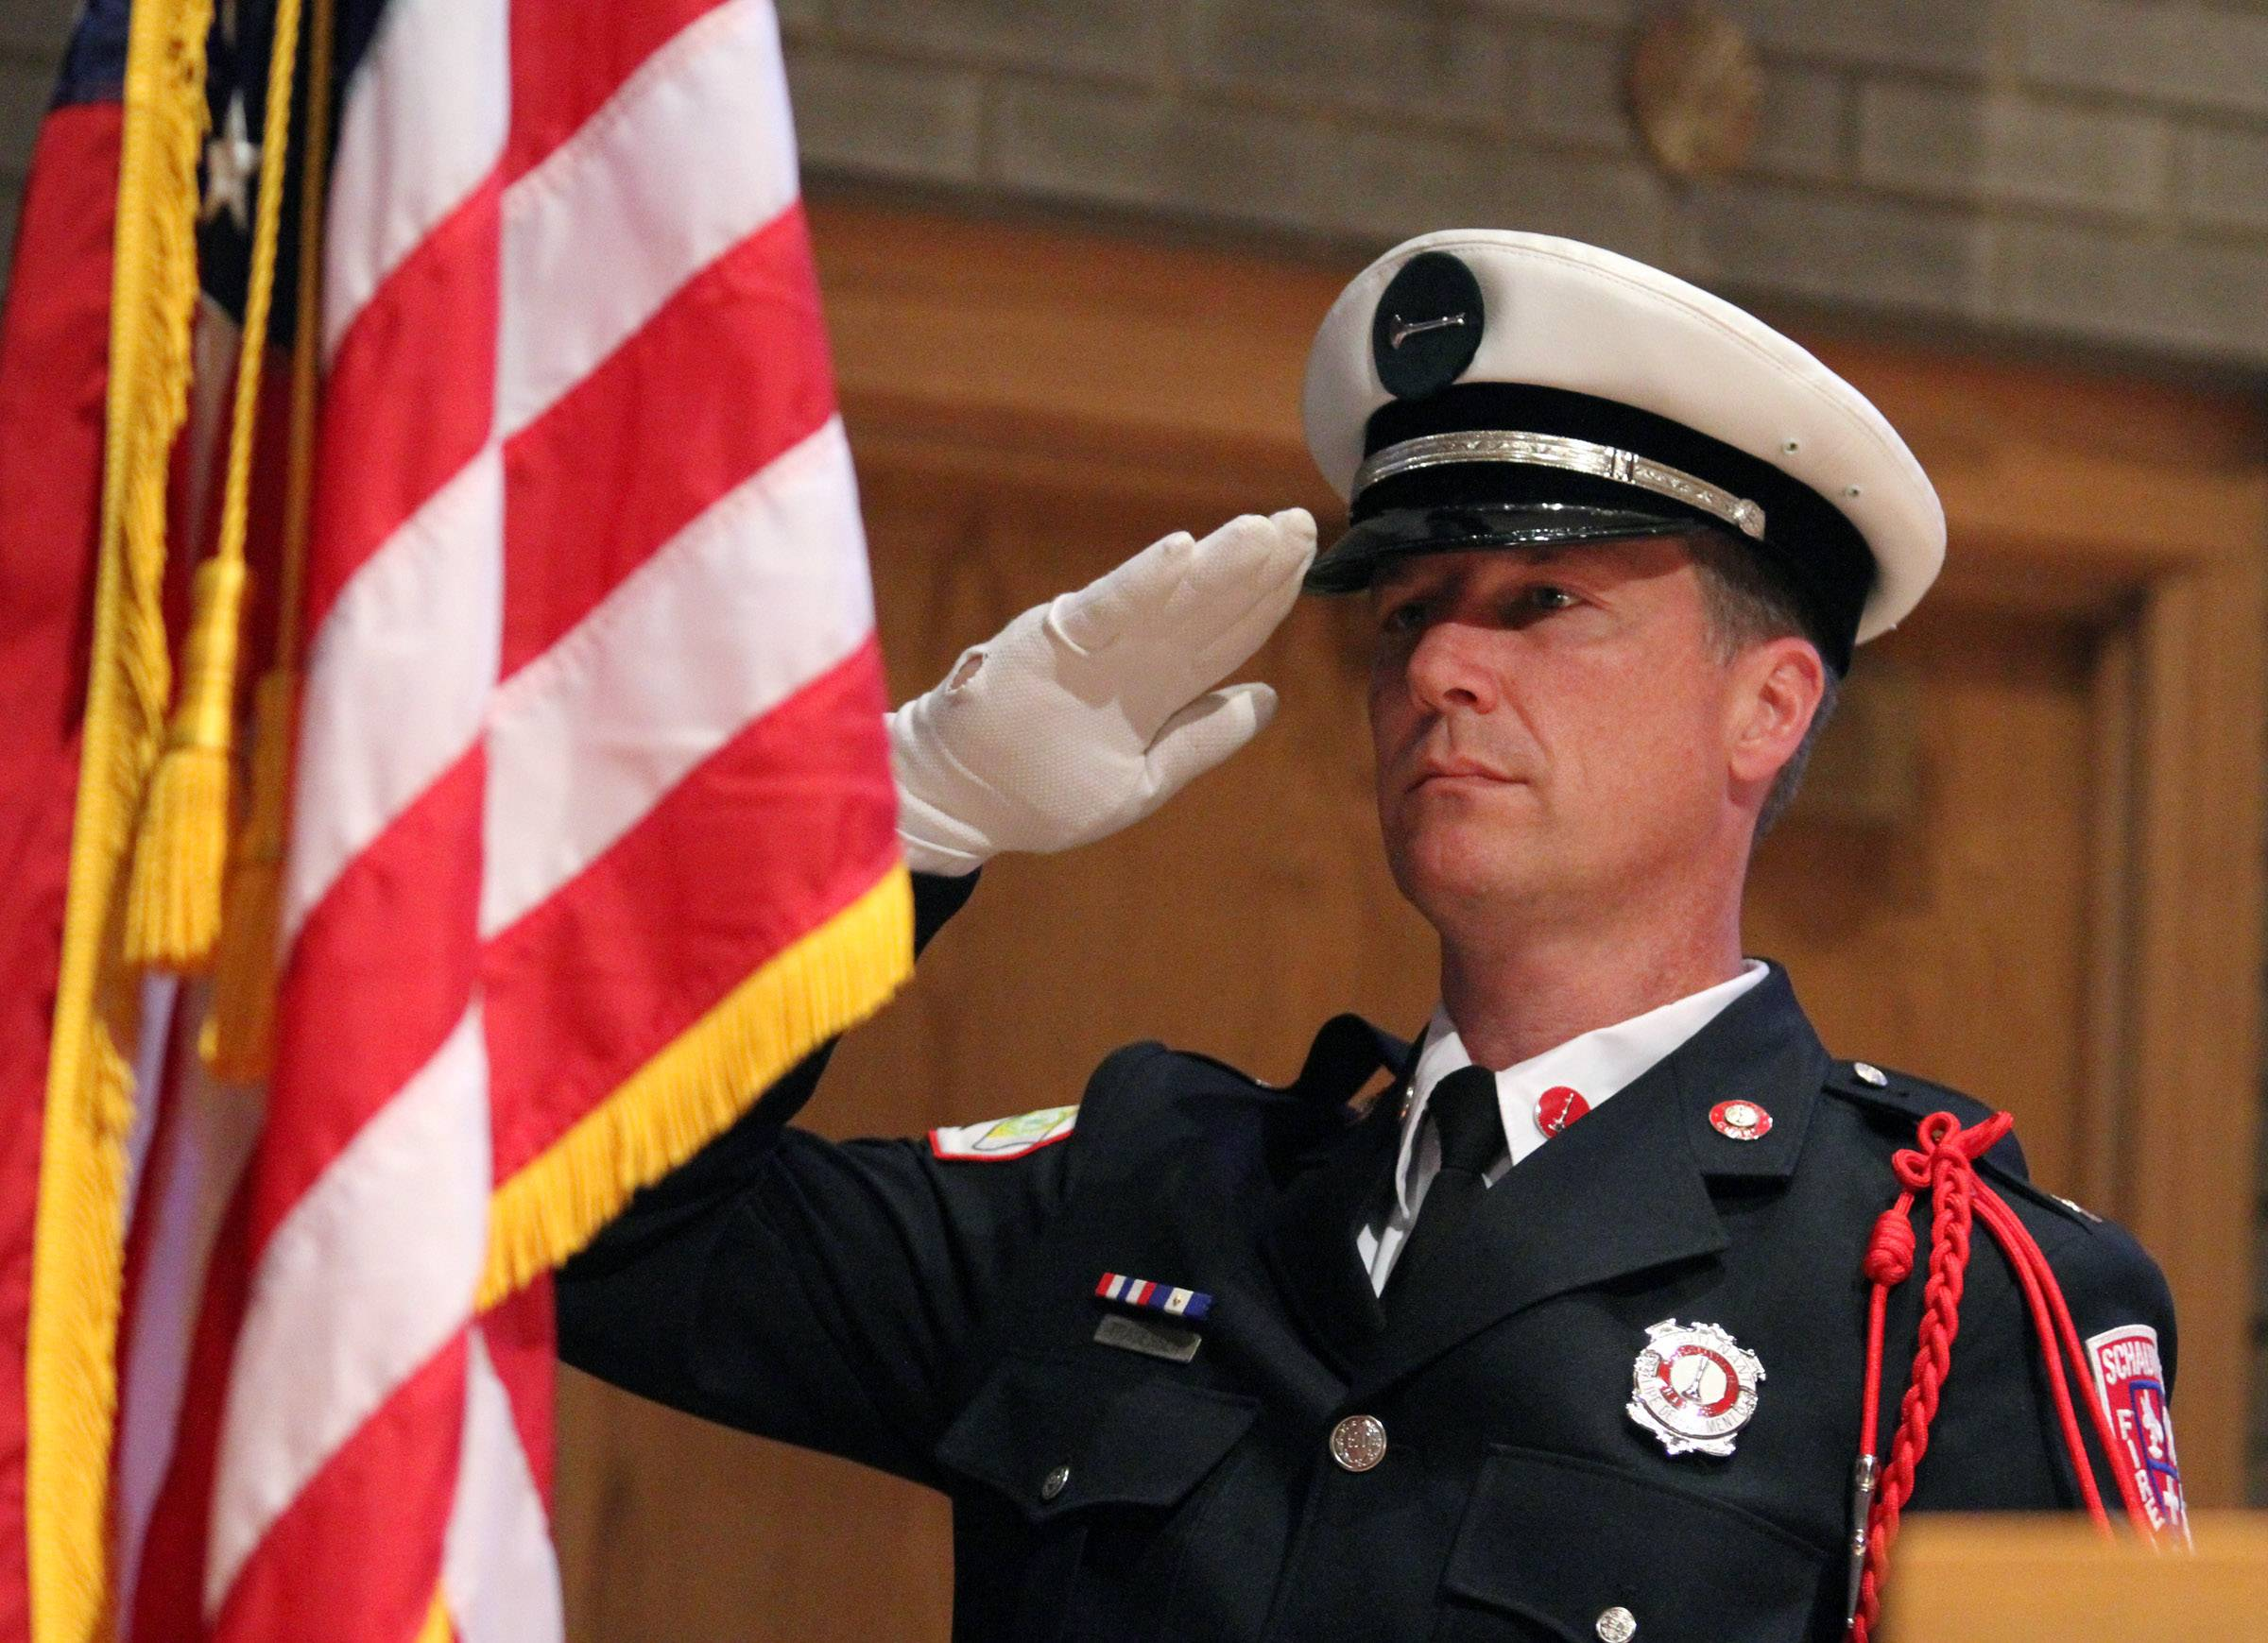 Doug Tragesser, Schaumburg Fire Department, salutes the American Flag during a Memorial Day ceremony at St. Peter Lutheran Church in Schaumburg.